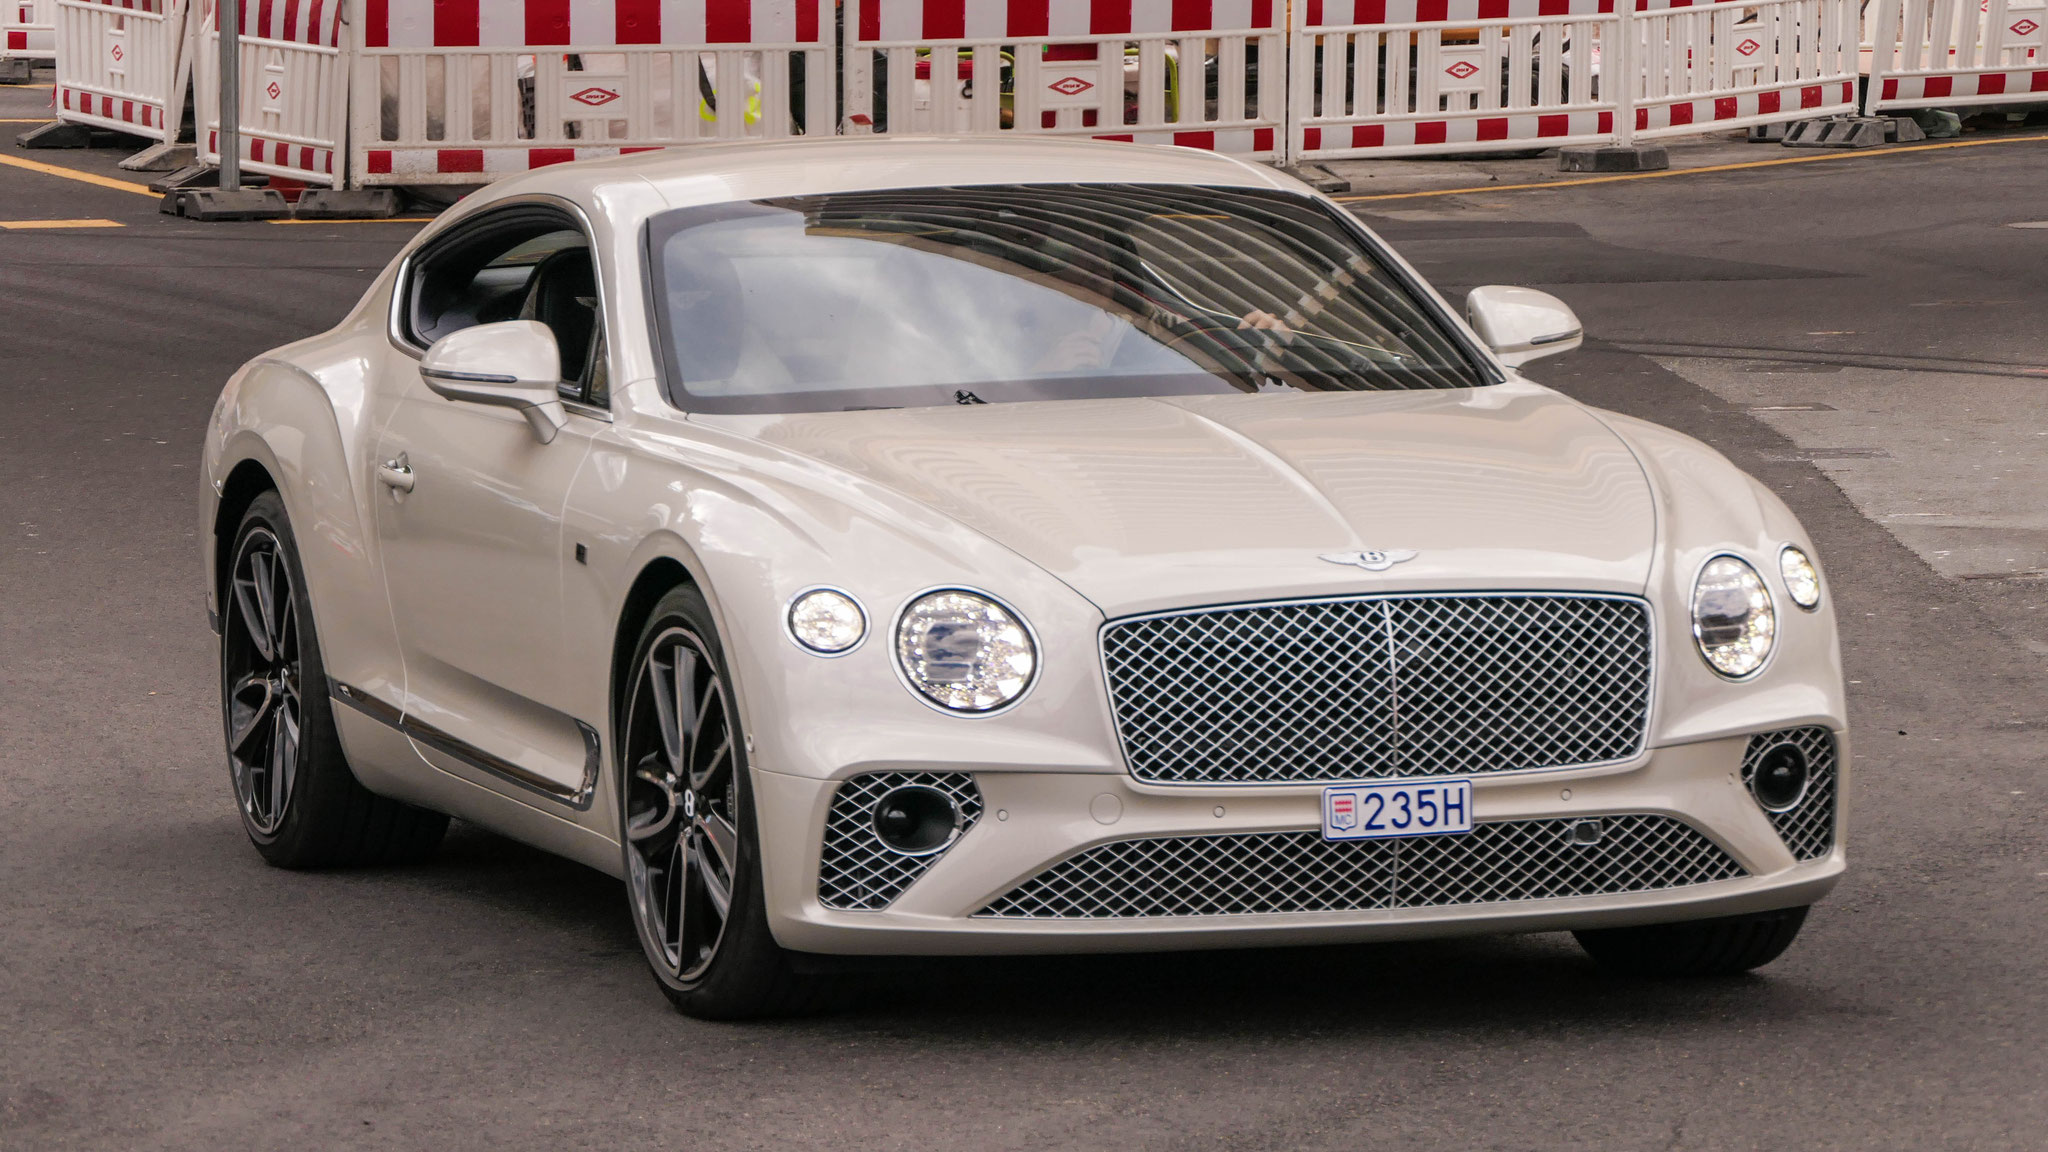 Bentley Continental GT - 235H (MC)